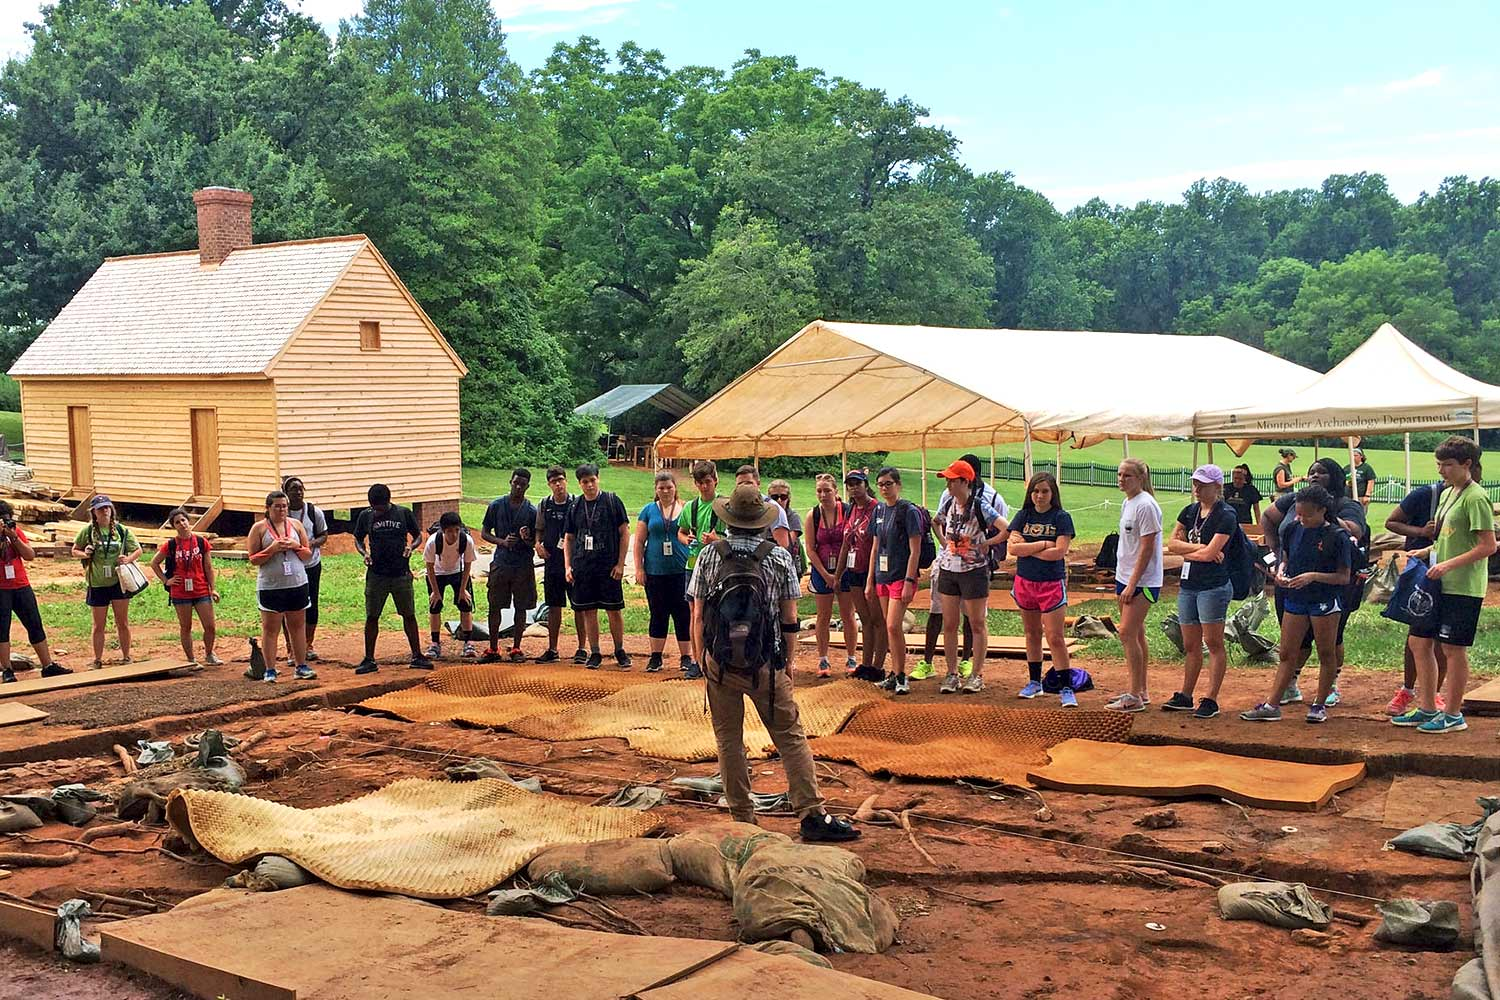 High school students attending UVA's Cornerstone Summer Institute visited Montpelier, James Madison's home, to learn about and take part in the archaeological work on sites where slaves and freed black families lived. (Submitted photo)